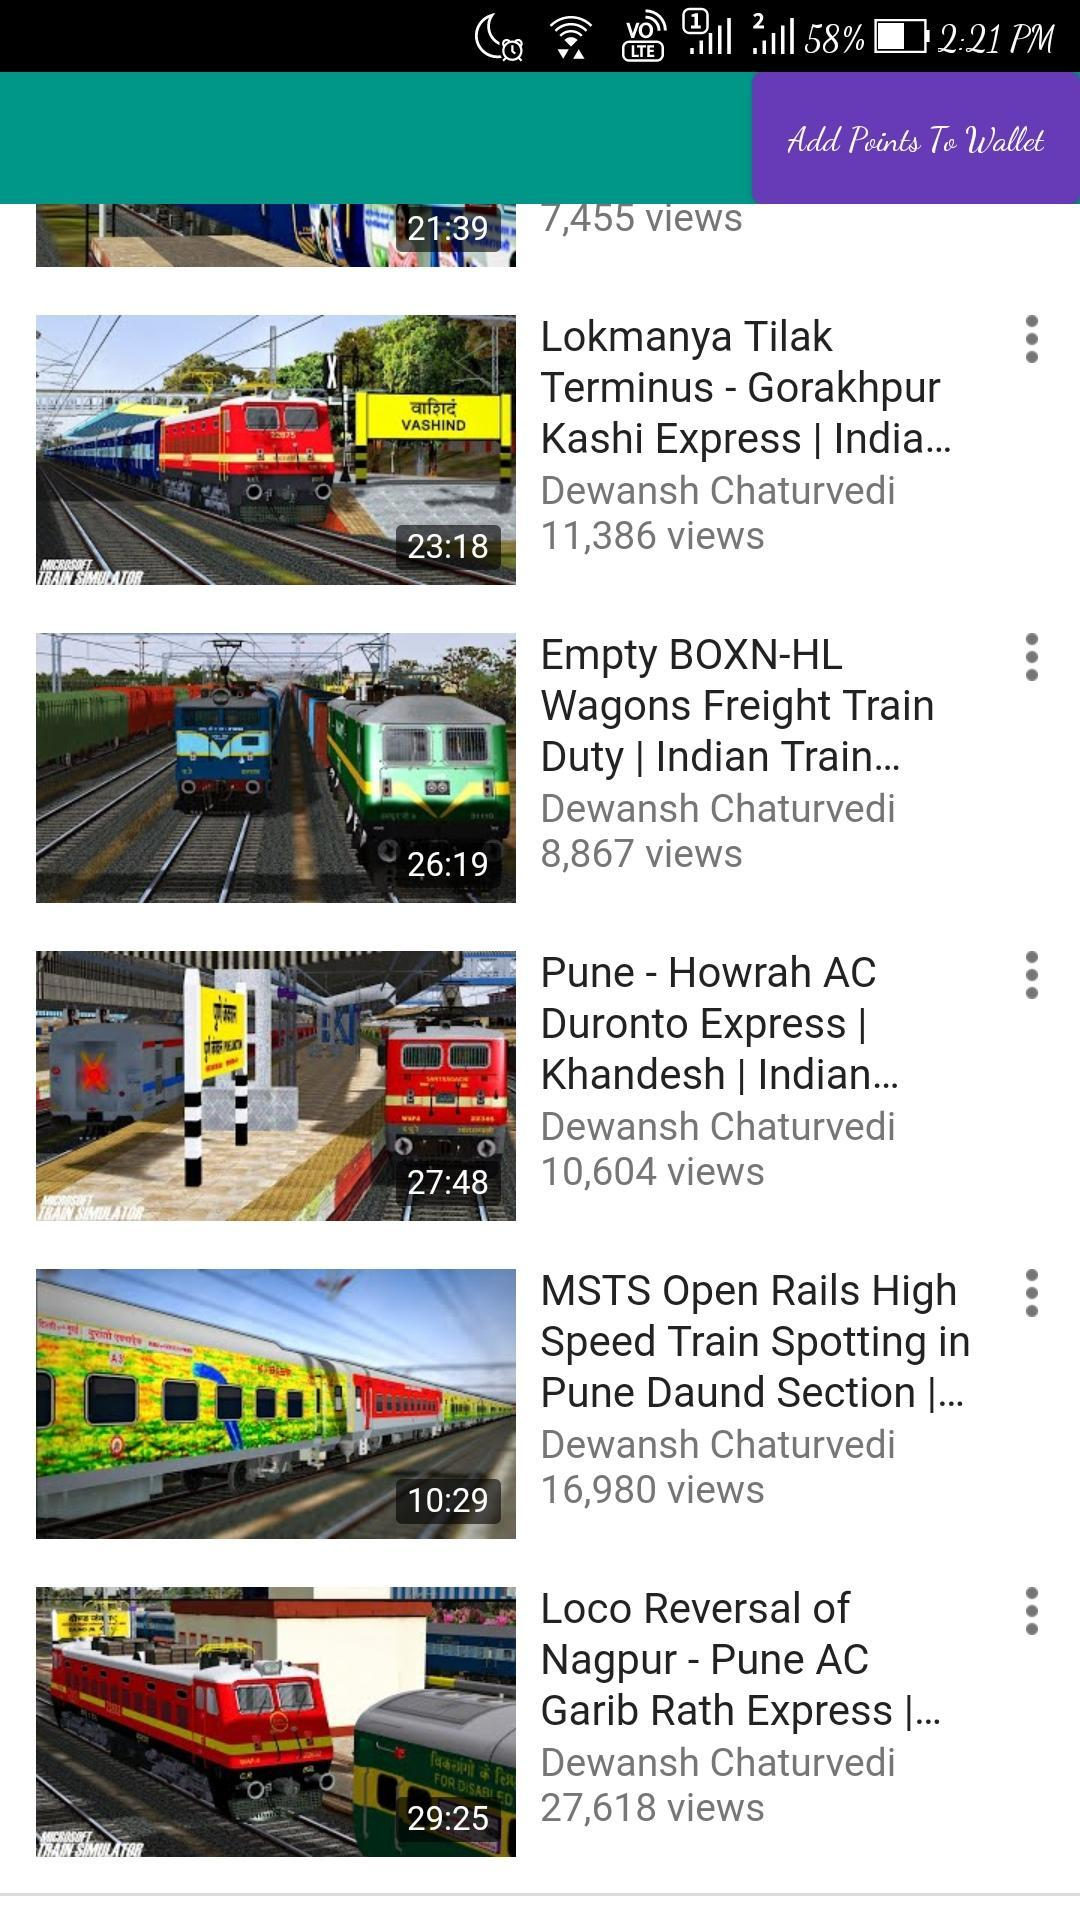 Indian Railway Simulator for Android - APK Download